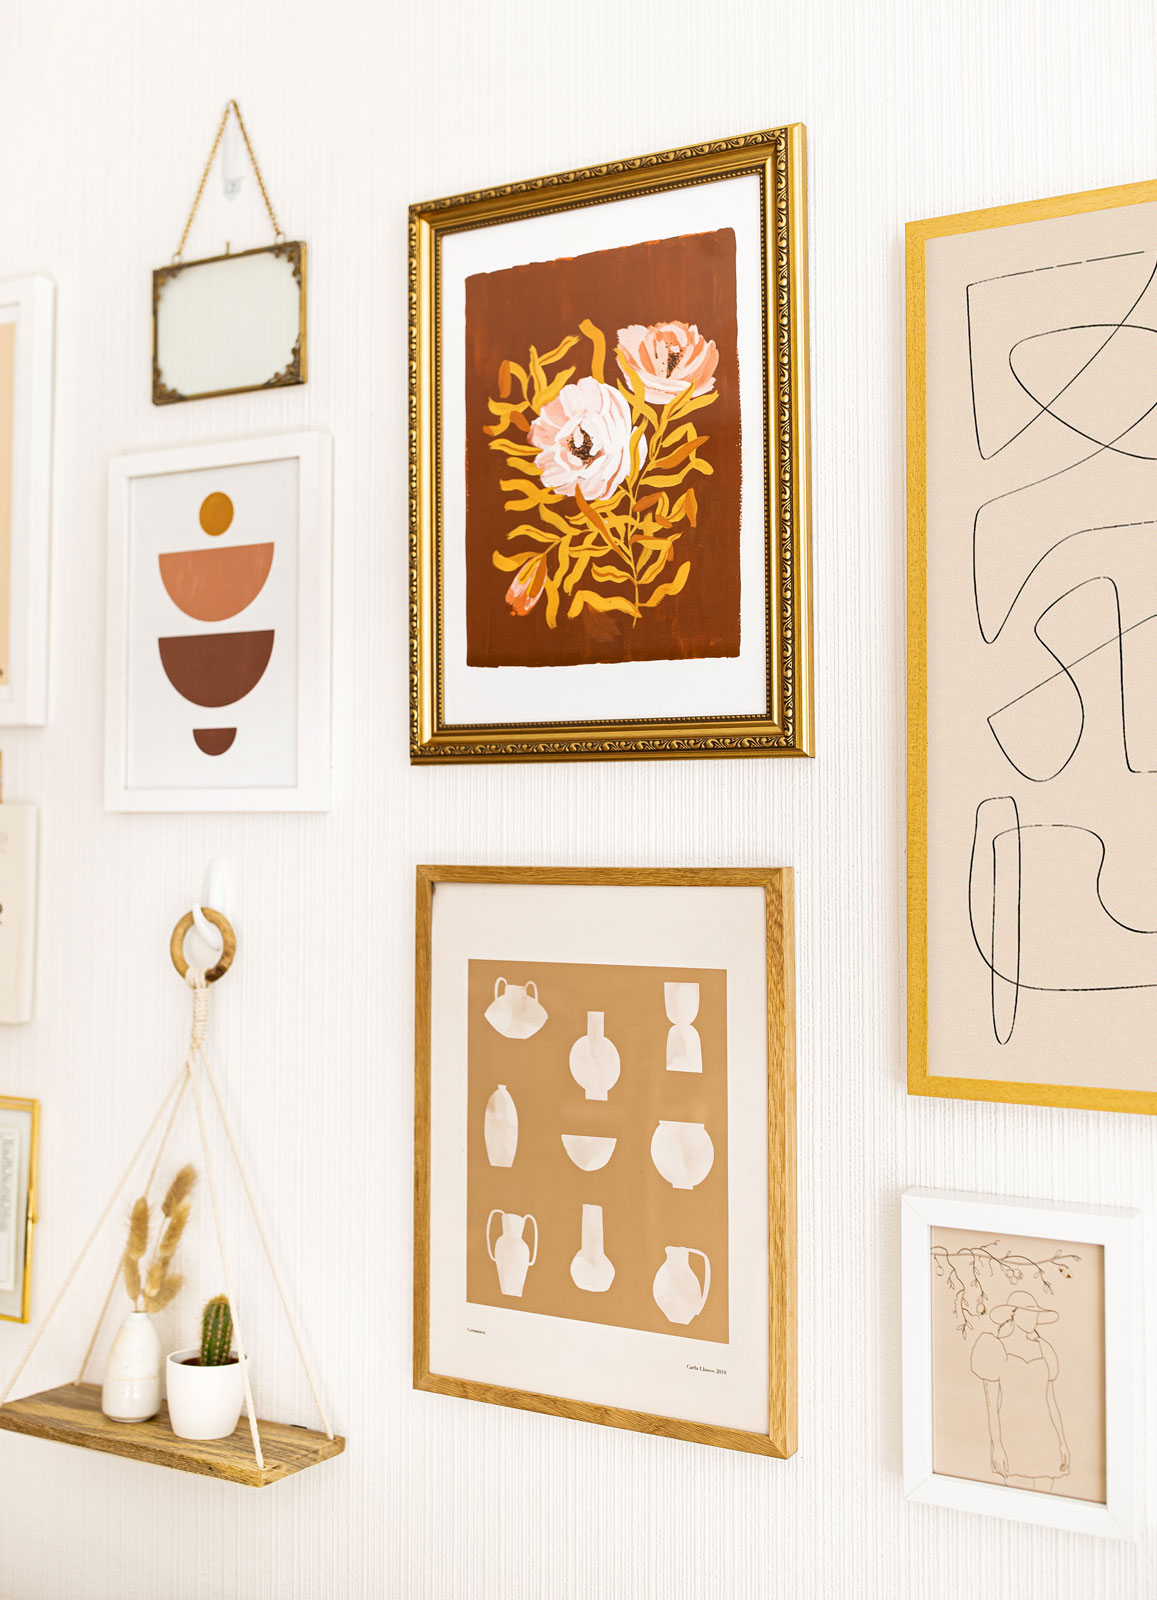 How to Create the Perfect Gallery Wall - Gallery Wall Tips – Photo Wall - Interior Decorating Tips – Kelsey Heinrichs - @kelseyinlondon - @homewithkelsey